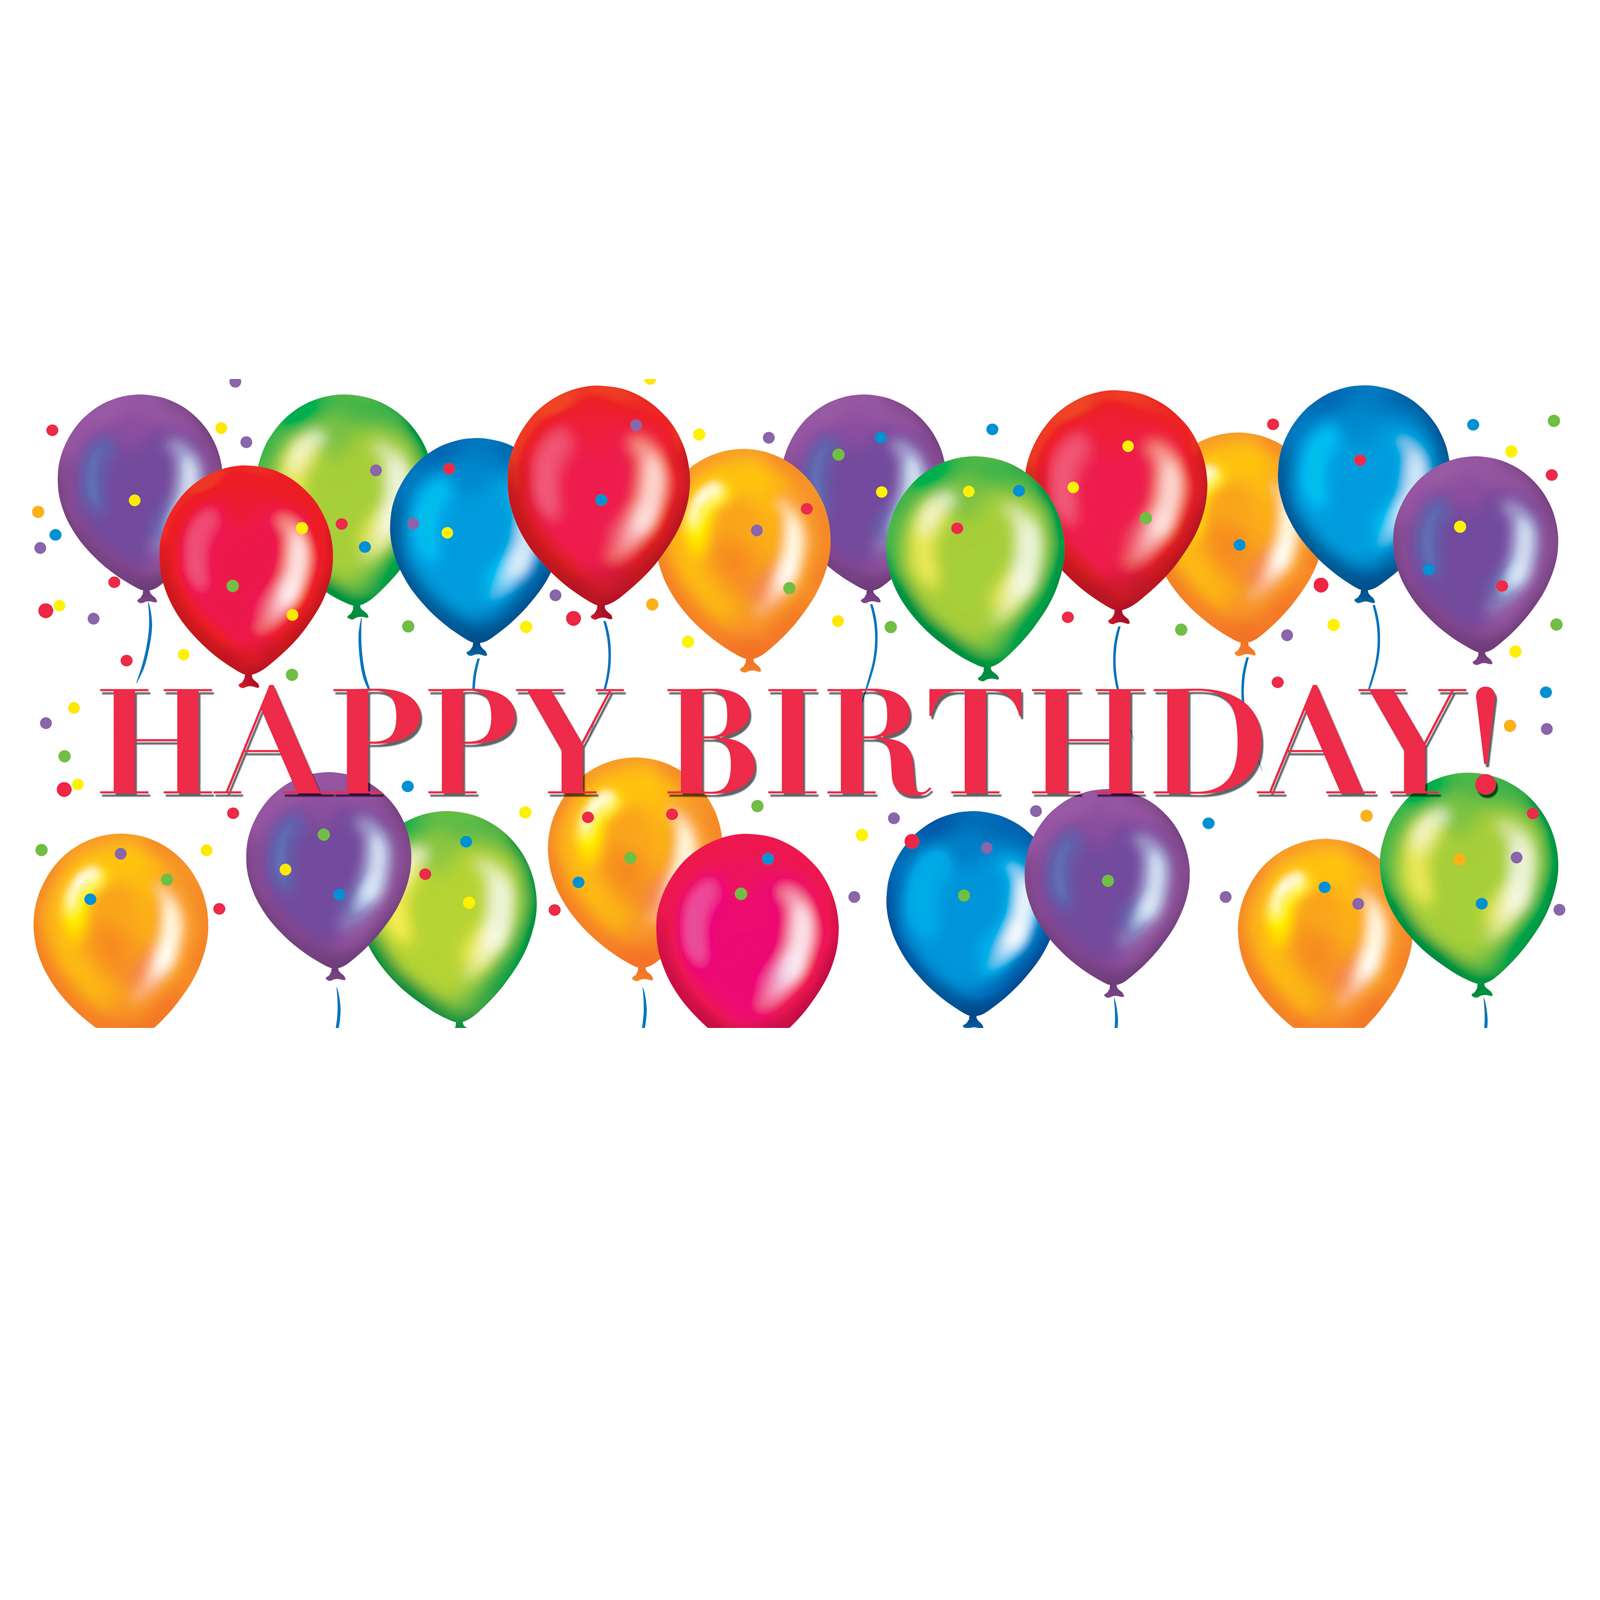 clipart for happy birthday - photo #38